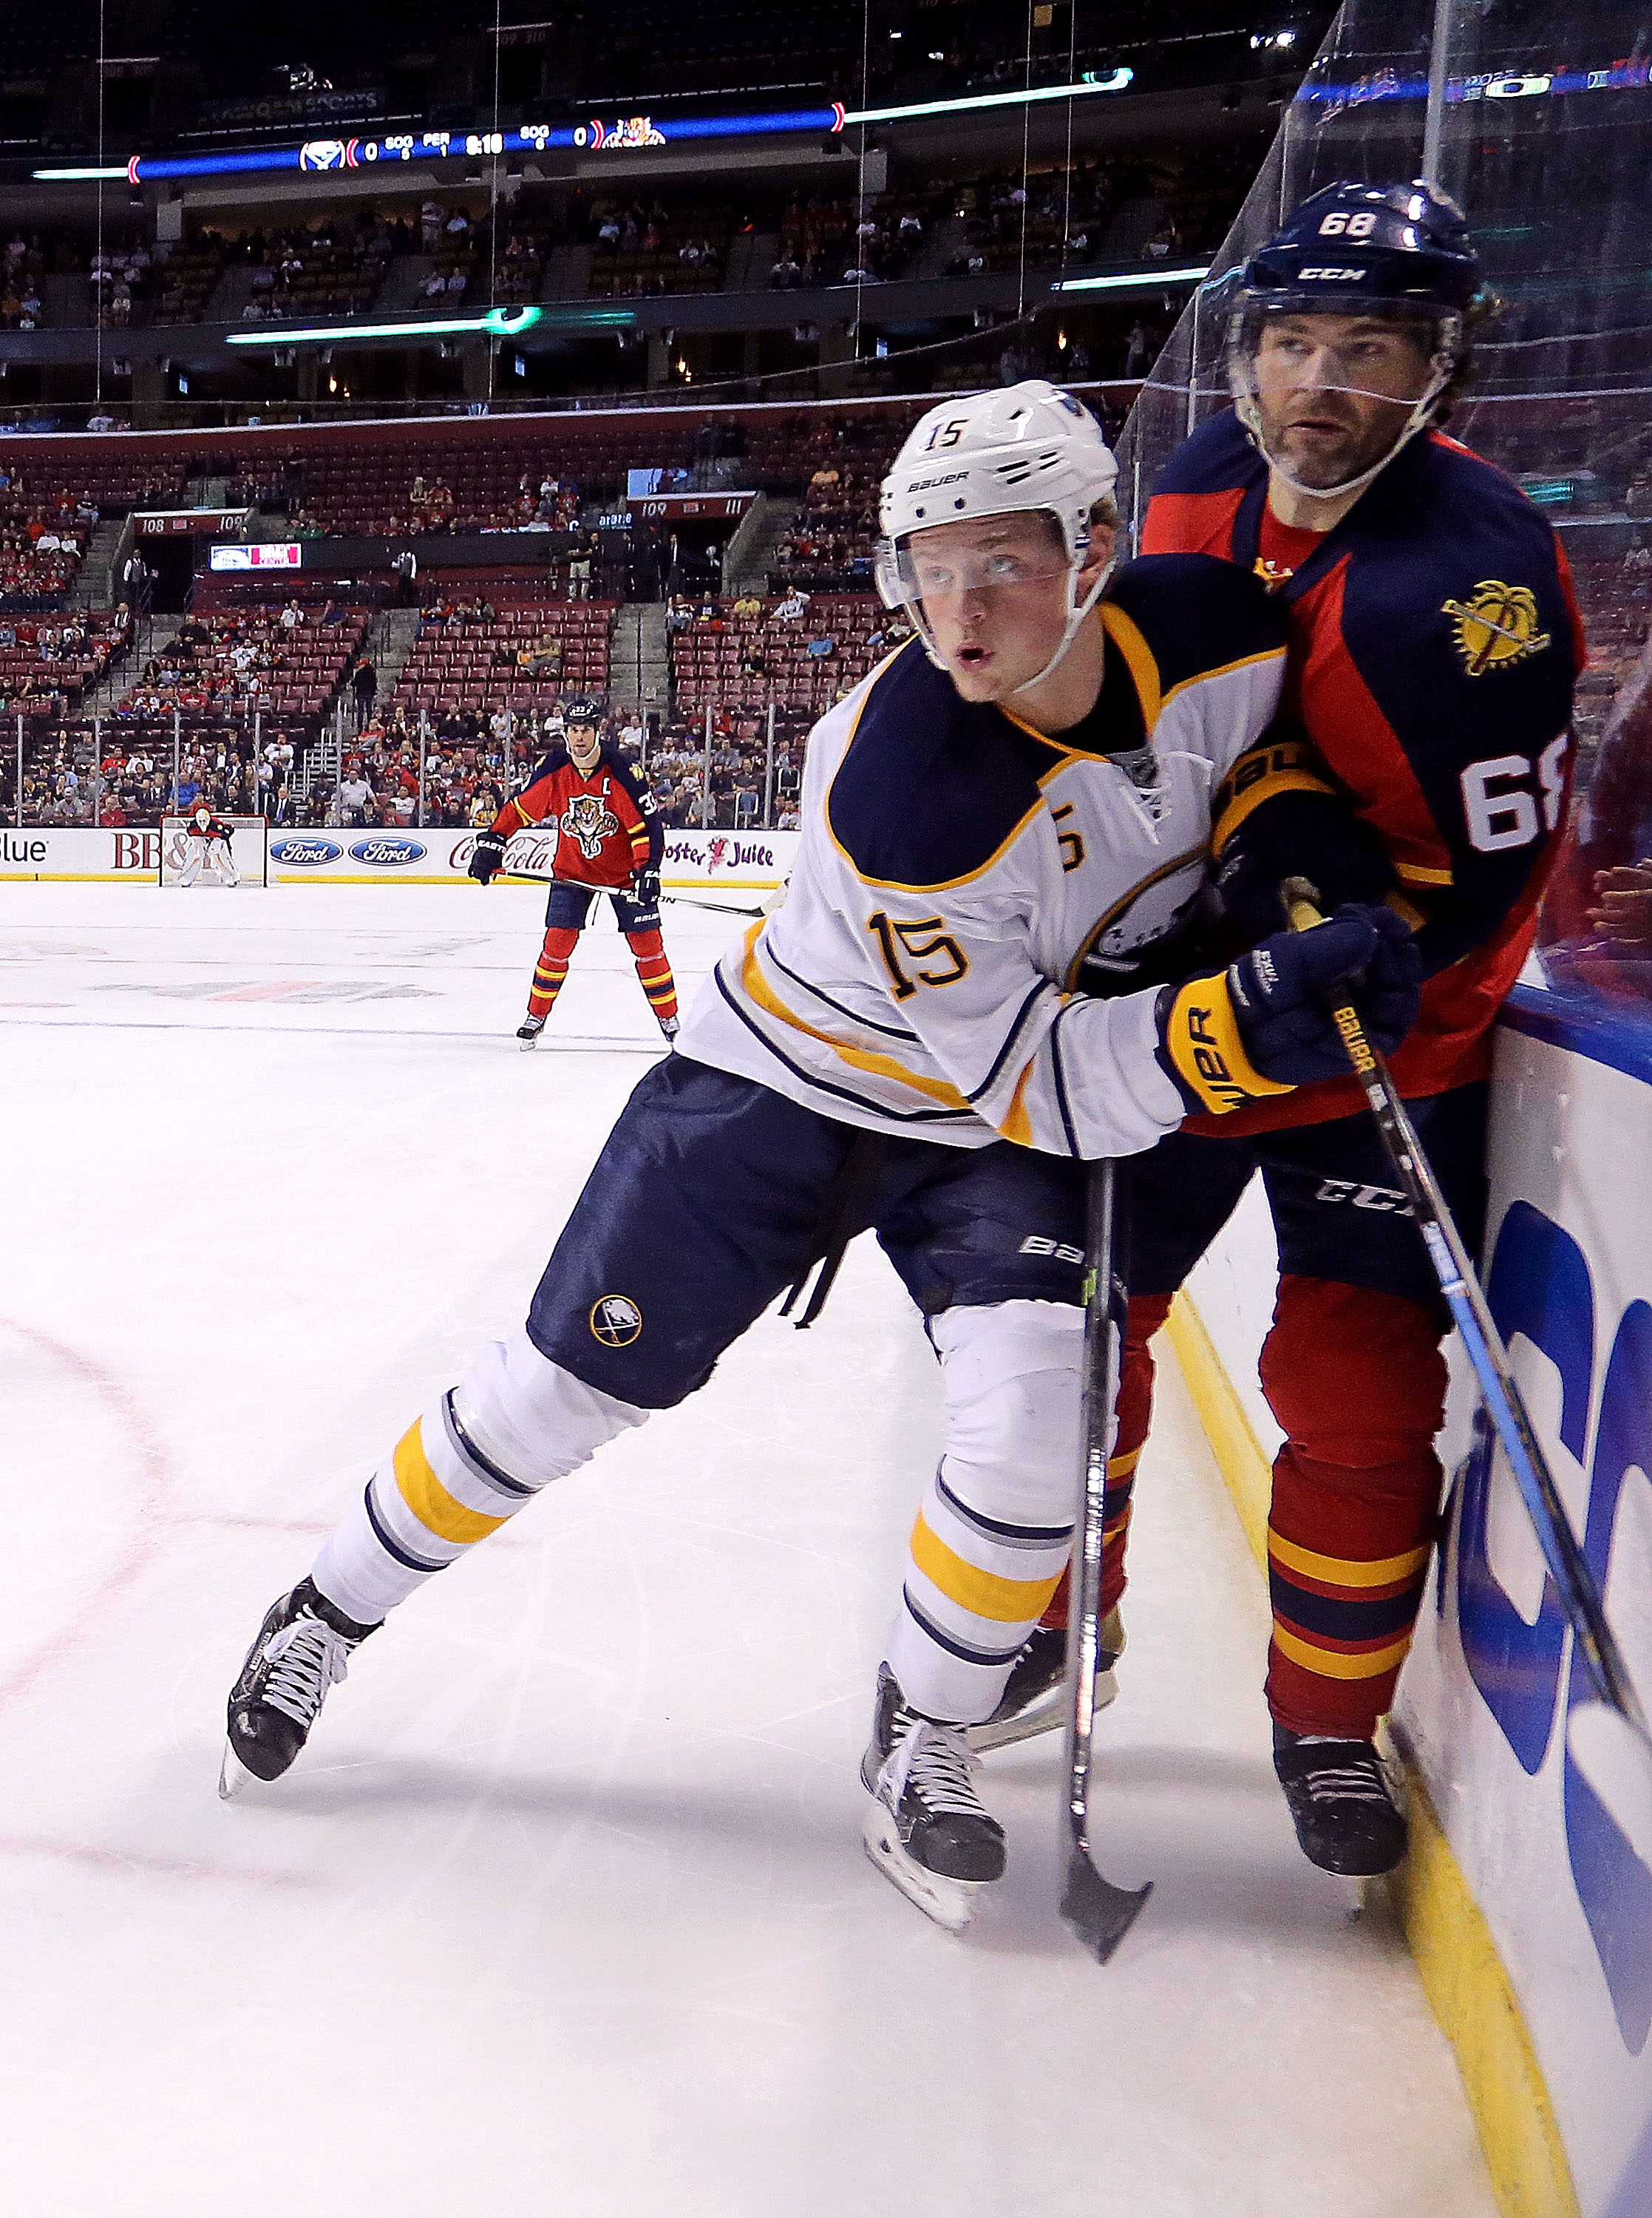 The Sabres' Jack Eichel and Florida's Jaromir Jagr will meet again Tuesday. (Getty Images)